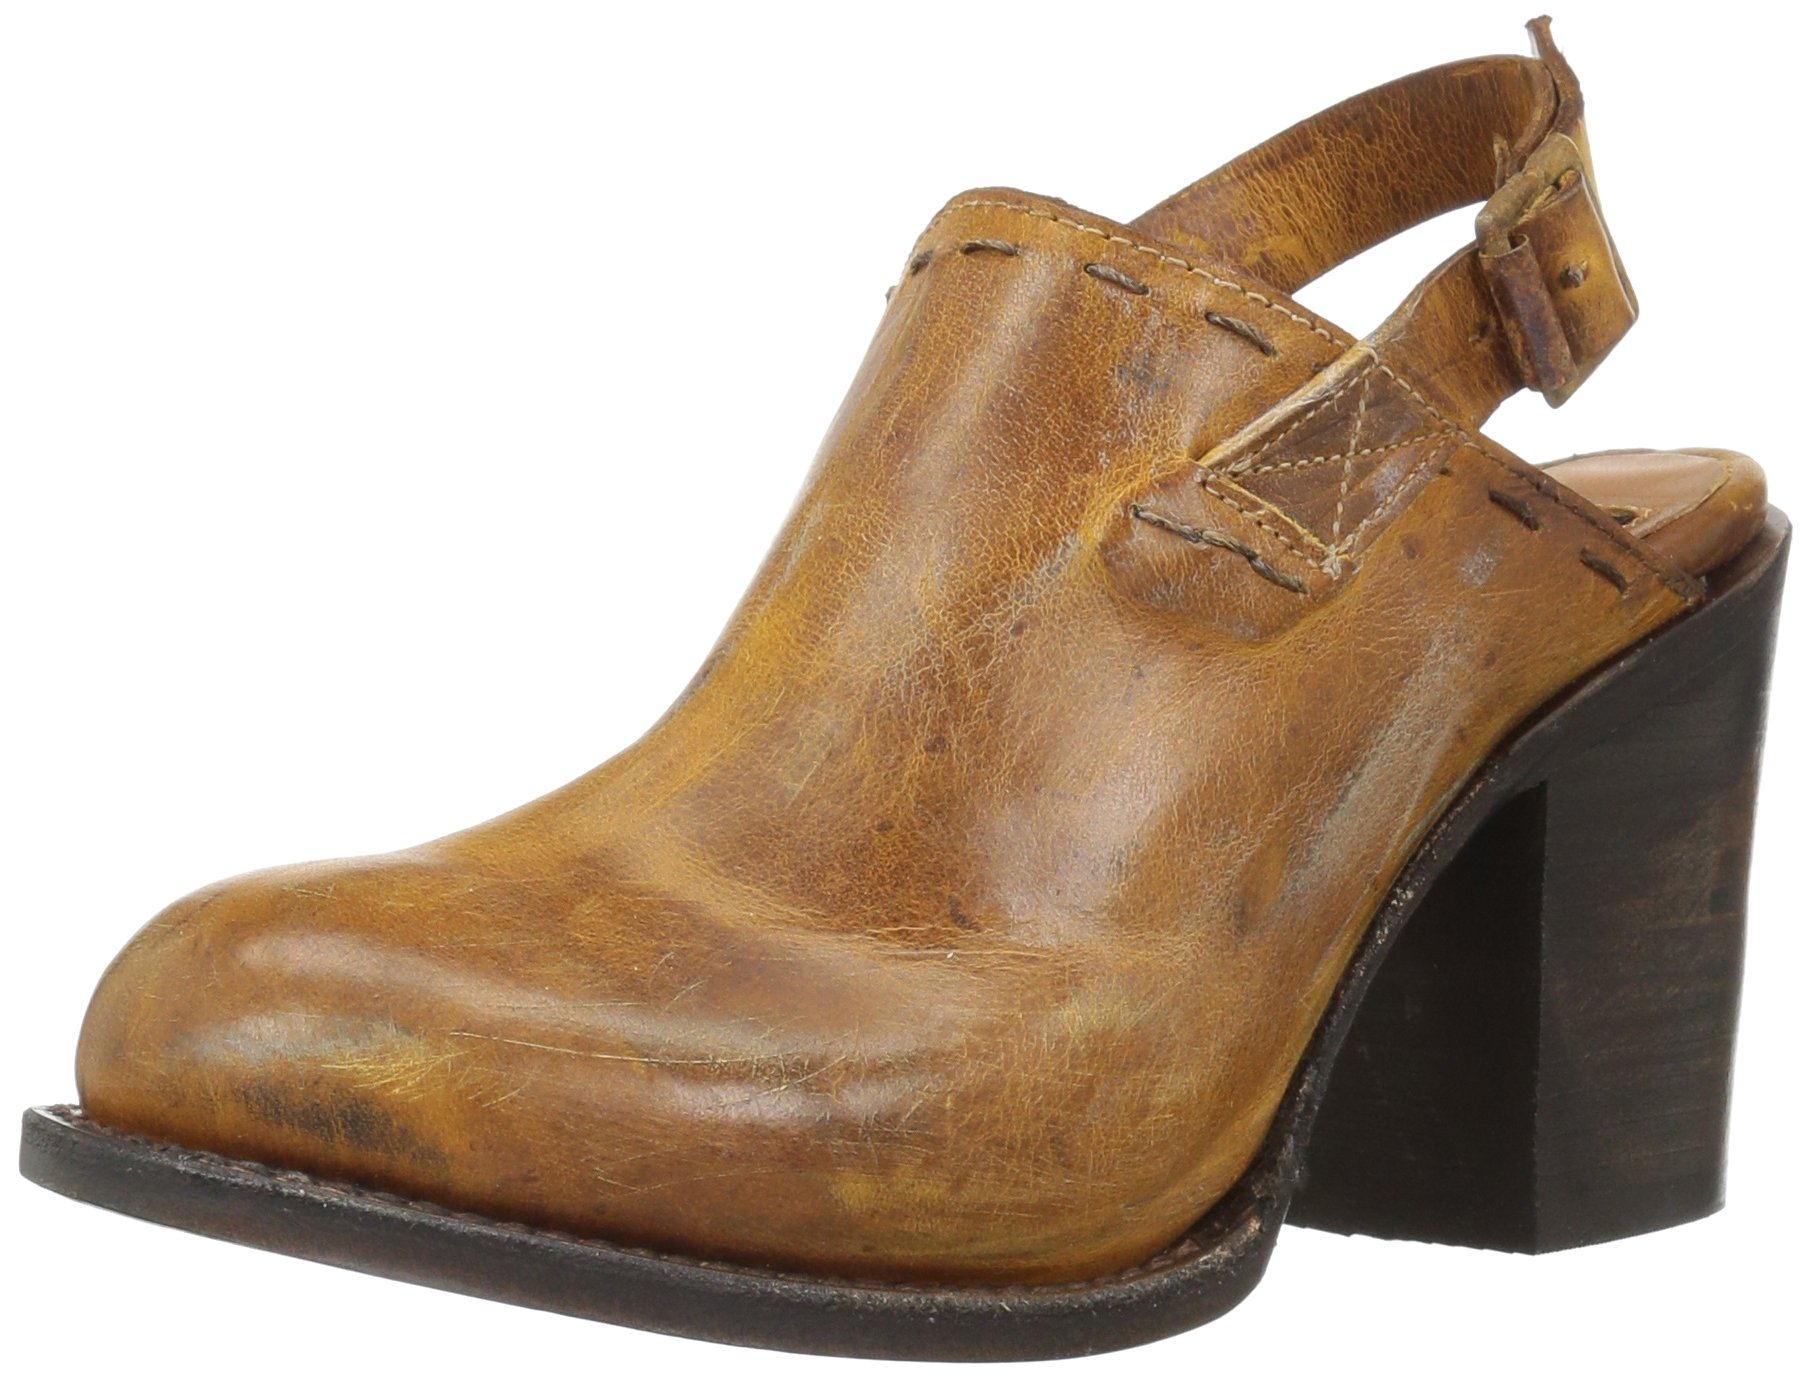 Freebird Women's Gold Mule, Tan, 8 M US by Freebird by Steven